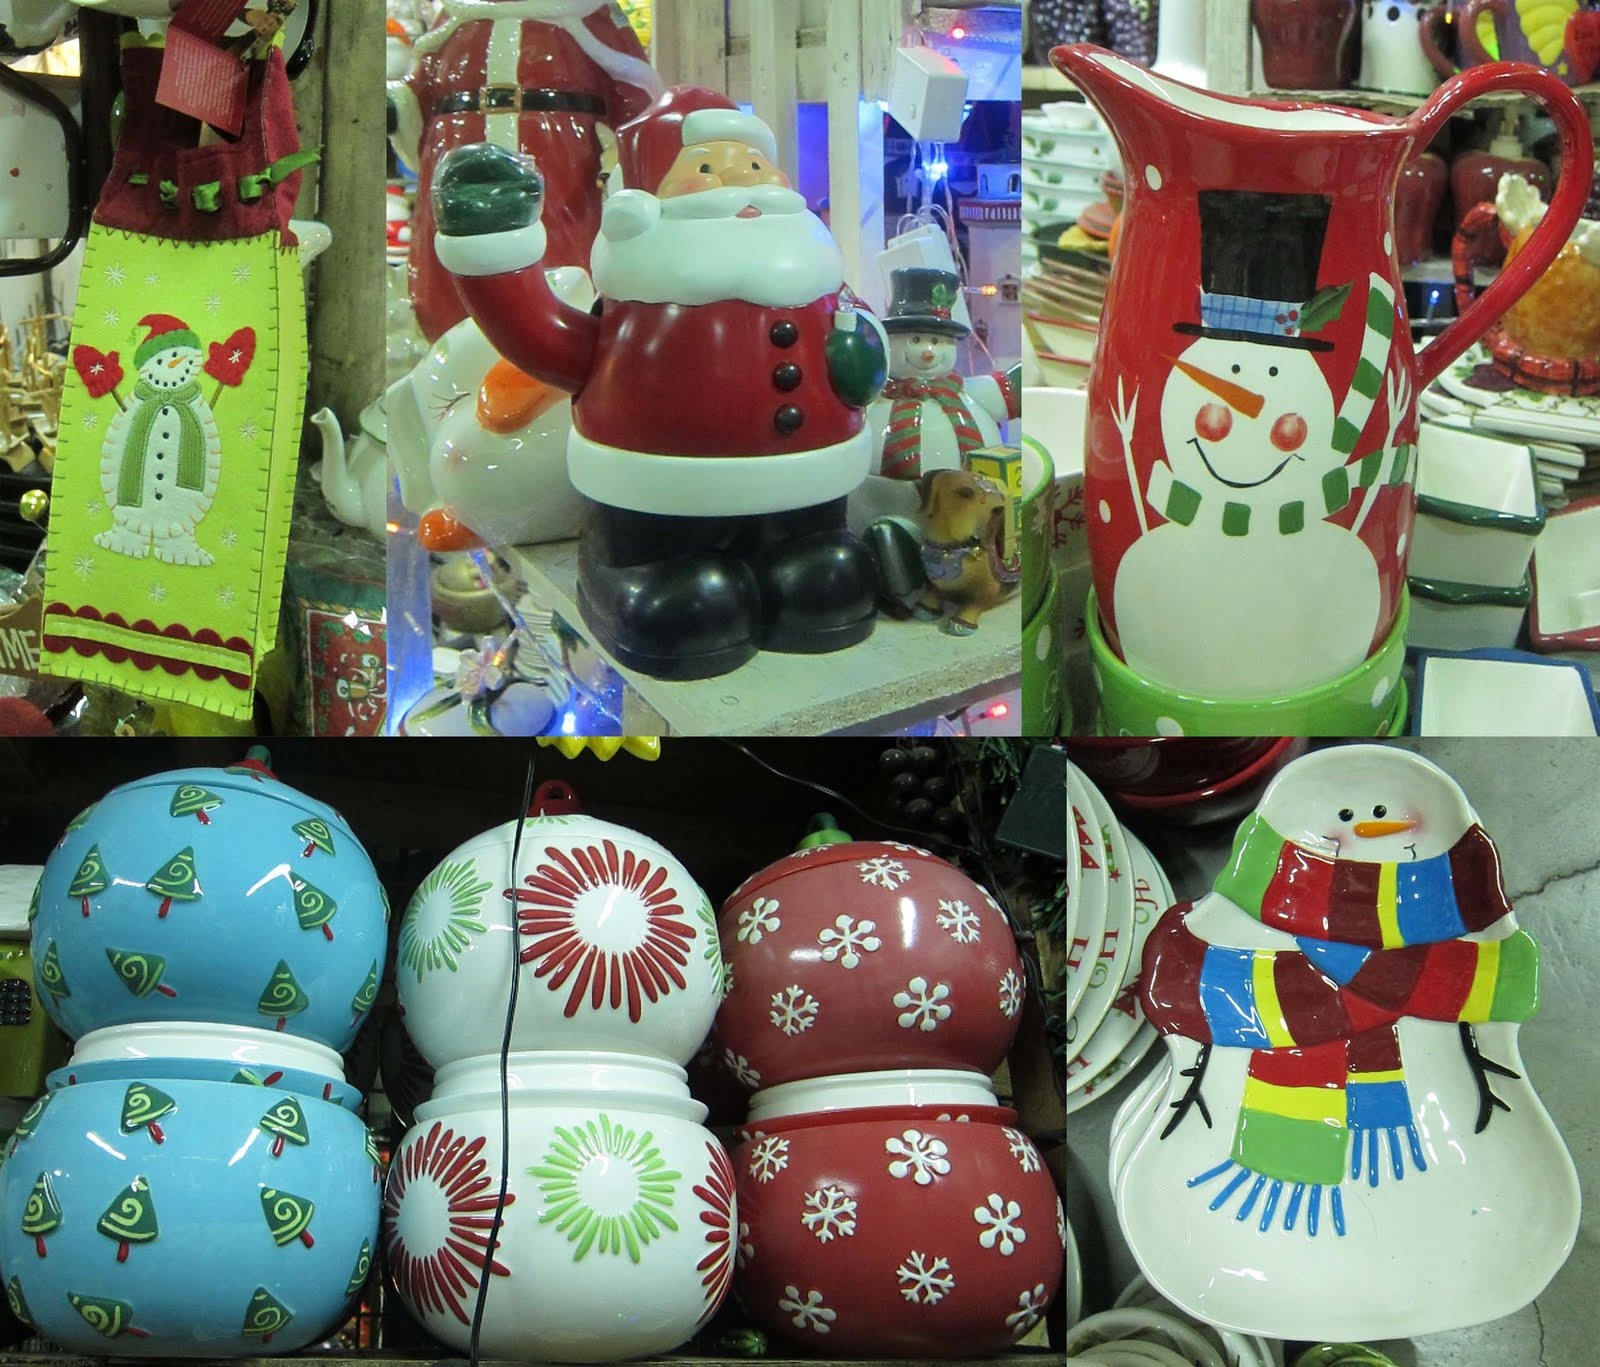 Low Price Christmas Decorations: Dapitan Arcade: Home And Decor Finds At Low Prices